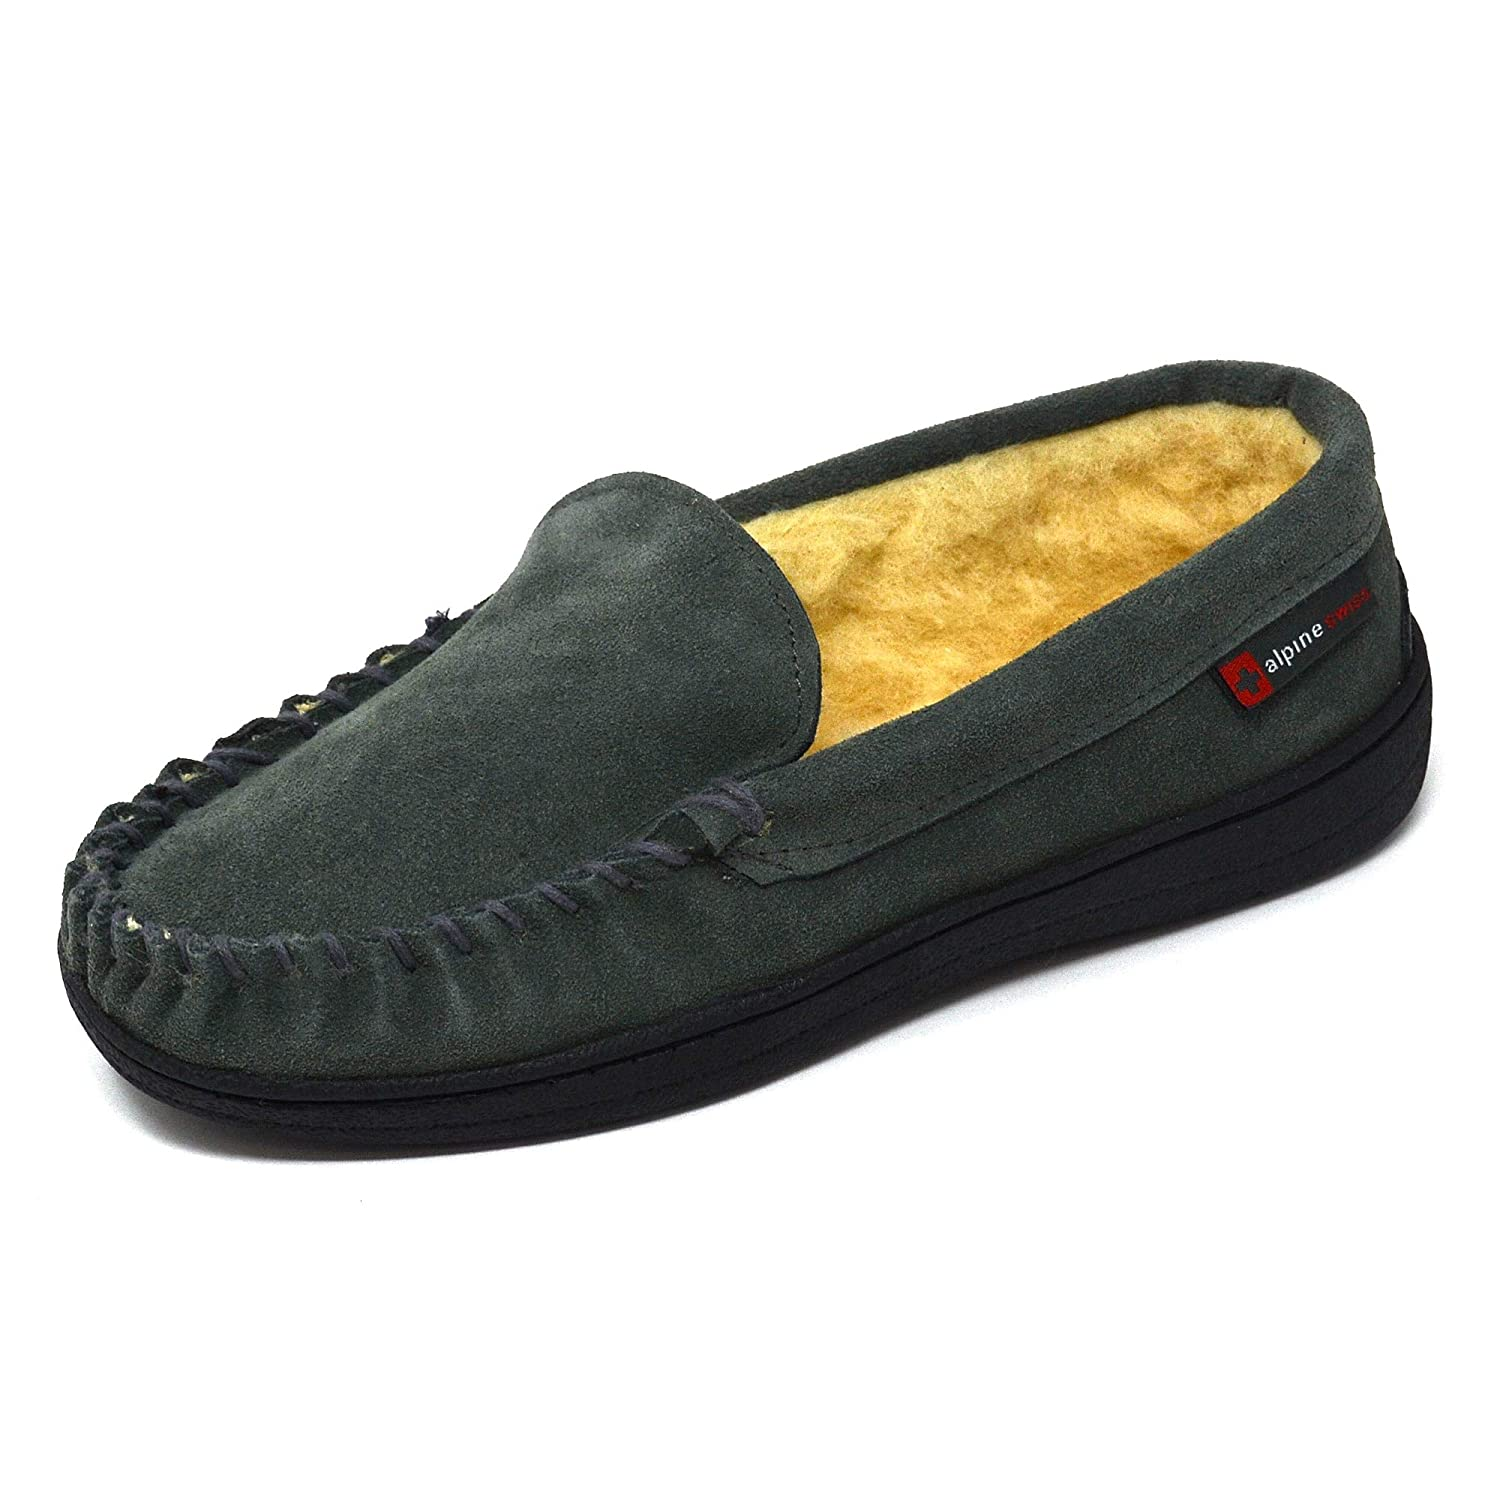 alpine swiss Yukon Mens Genuine Suede Shearling Slip On Moccasin Slippers By Alpine Swiss